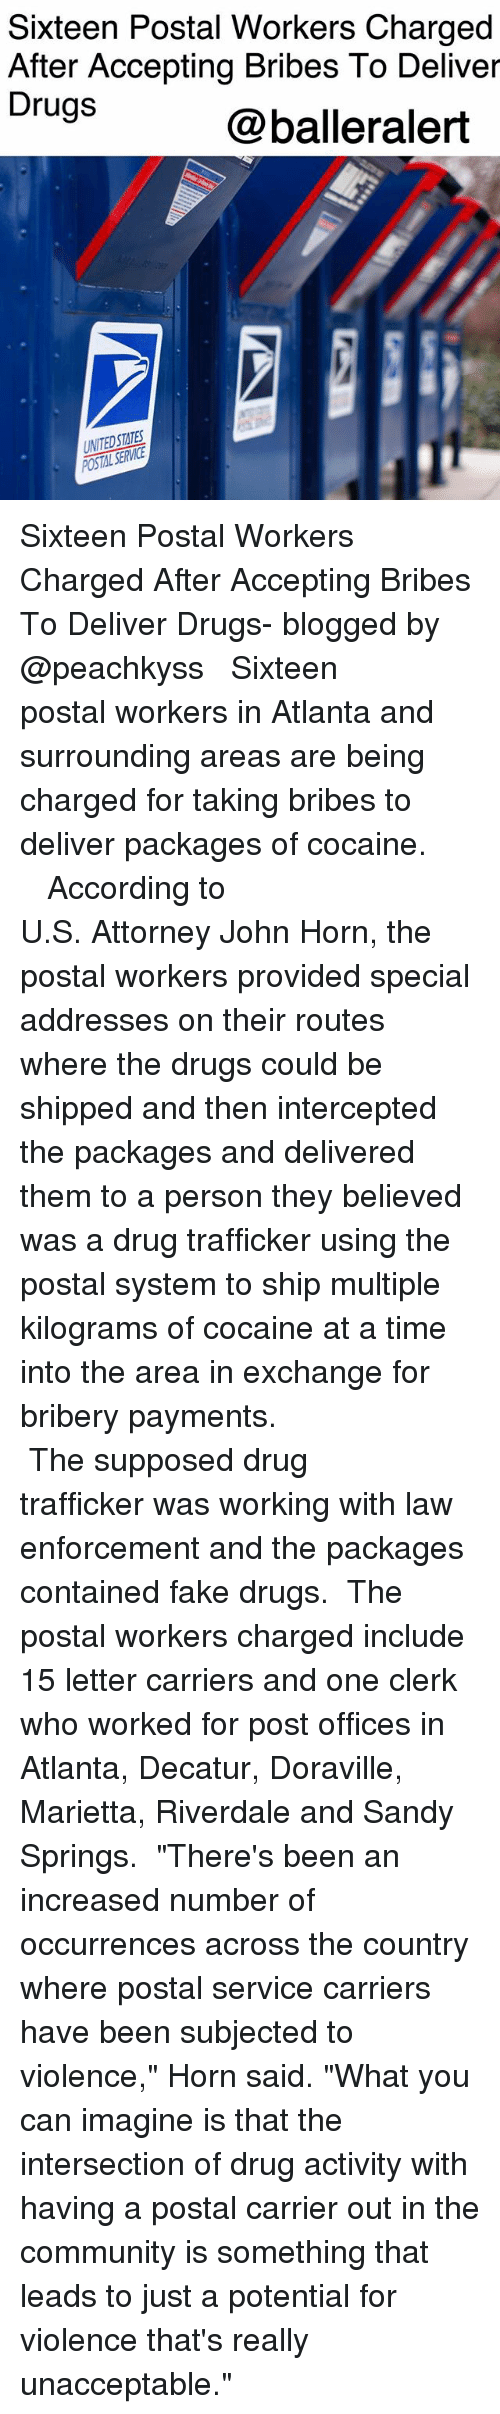 "attorneys: Sixteen Postal Workers Charged  After Accepting Bribes To Deliver  Drugs  @balleralert  UNITEDSTATES Sixteen Postal Workers Charged After Accepting Bribes To Deliver Drugs- blogged by @peachkyss ⠀⠀⠀⠀⠀⠀⠀ ⠀⠀⠀⠀⠀⠀⠀ Sixteen postal workers in Atlanta and surrounding areas are being charged for taking bribes to deliver packages of cocaine. ⠀⠀⠀⠀⠀⠀⠀ ⠀⠀⠀⠀⠀⠀⠀ ⠀⠀⠀⠀⠀⠀⠀ According to U.S. Attorney John Horn, the postal workers provided special addresses on their routes where the drugs could be shipped and then intercepted the packages and delivered them to a person they believed was a drug trafficker using the postal system to ship multiple kilograms of cocaine at a time into the area in exchange for bribery payments. ⠀⠀⠀⠀⠀⠀⠀ ⠀⠀⠀⠀⠀⠀⠀ ⠀⠀⠀⠀⠀⠀⠀ The supposed drug trafficker was working with law enforcement and the packages contained fake drugs. ⠀⠀⠀⠀⠀⠀⠀ The postal workers charged include 15 letter carriers and one clerk who worked for post offices in Atlanta, Decatur, Doraville, Marietta, Riverdale and Sandy Springs. ⠀⠀⠀⠀⠀⠀⠀ ""There's been an increased number of occurrences across the country where postal service carriers have been subjected to violence,"" Horn said. ""What you can imagine is that the intersection of drug activity with having a postal carrier out in the community is something that leads to just a potential for violence that's really unacceptable."""